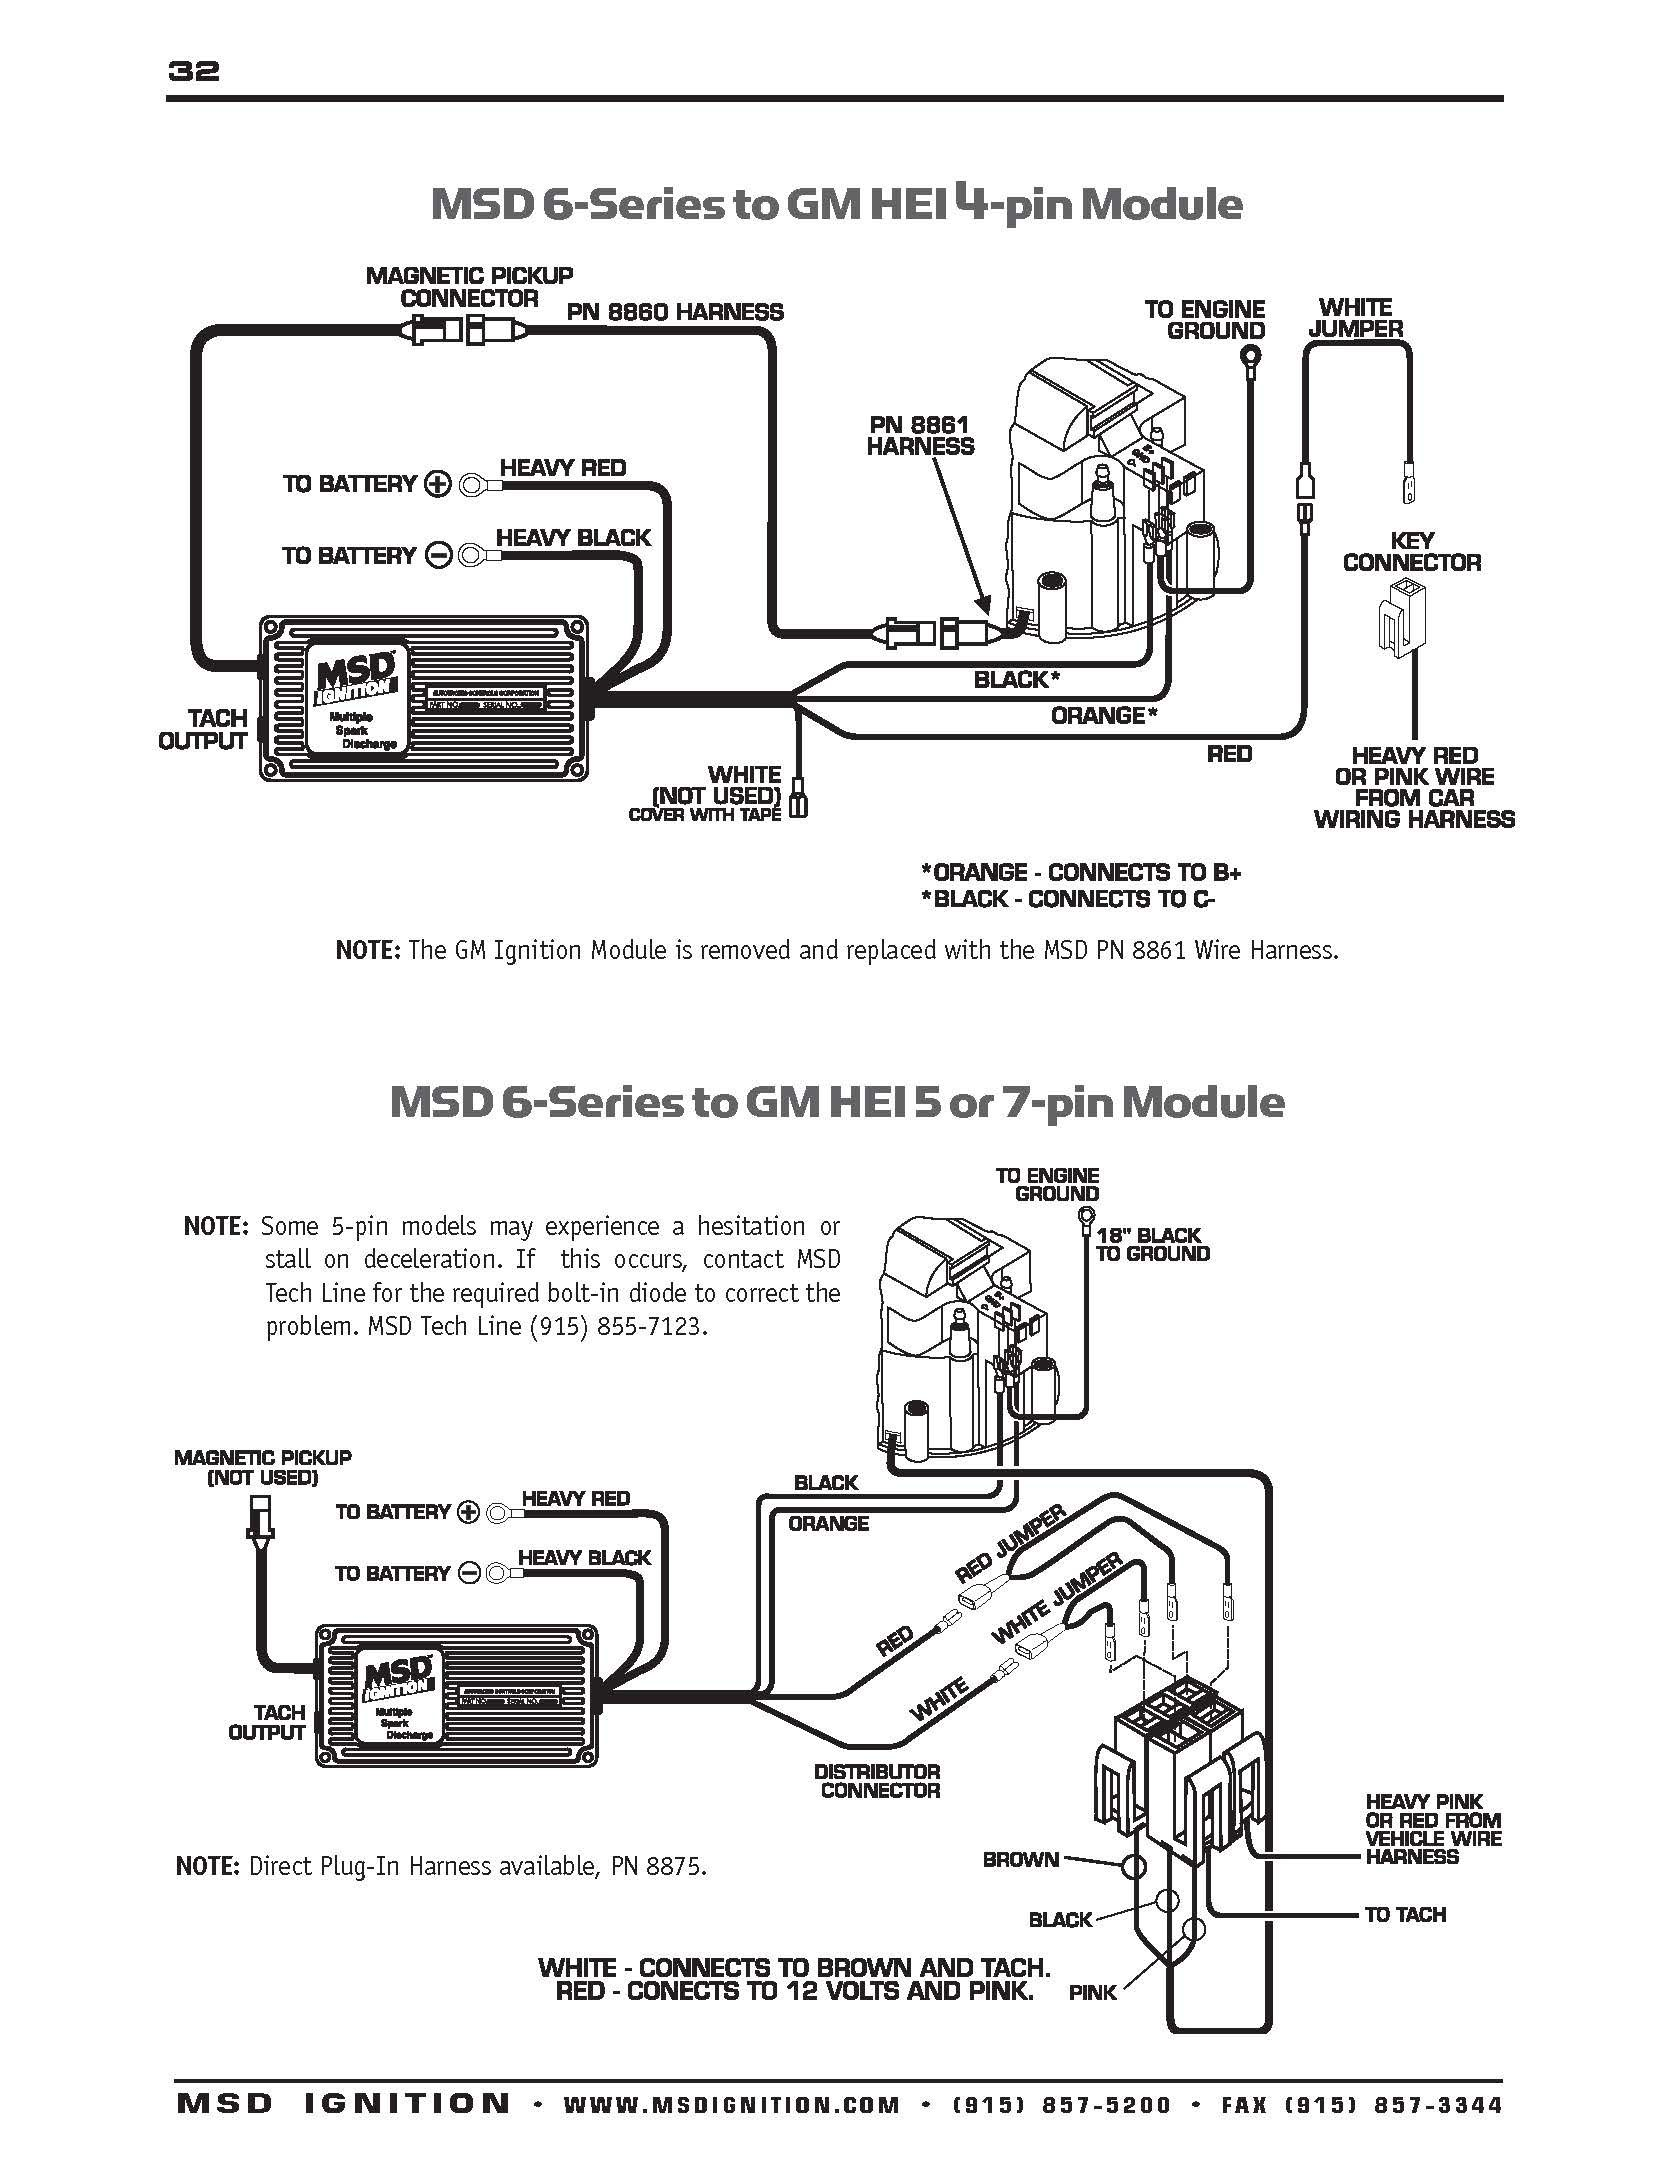 msd ignition wiring diagrams 1966 chevelle diagram automotive spark plug wire diagram 2001 dodge ram 1500 ignition wire diagram [ 1675 x 2175 Pixel ]